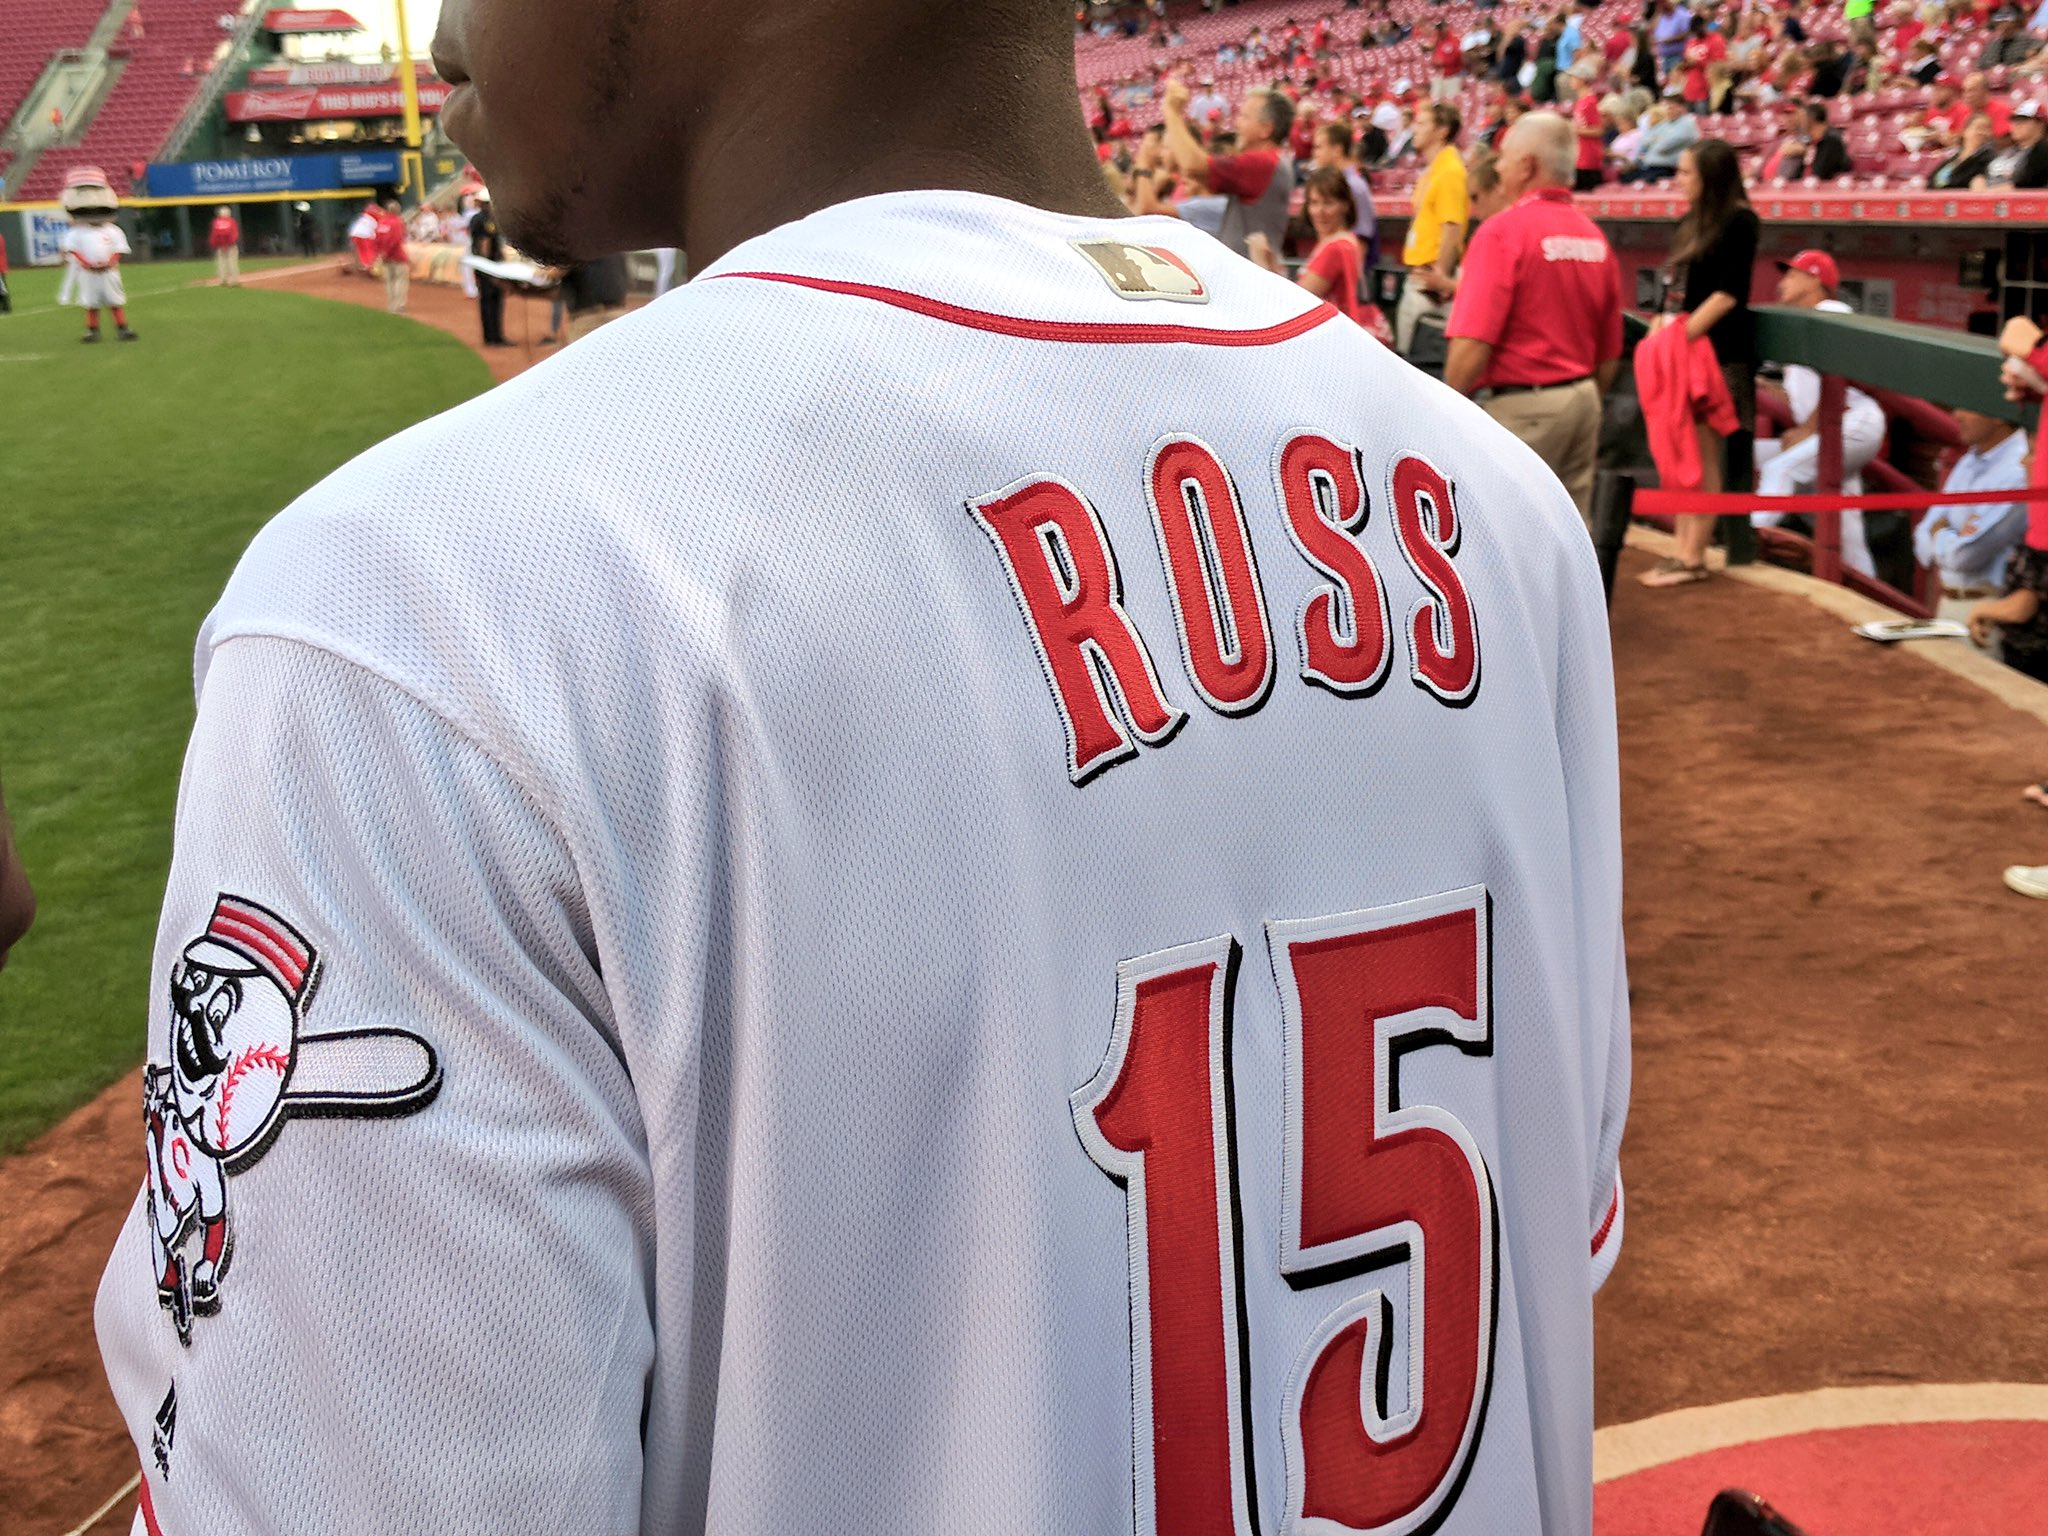 .@WatchJRoss with the @Reds threads to throw out tonight's first pitch ⚾️ https://t.co/mVX9B5wrtC